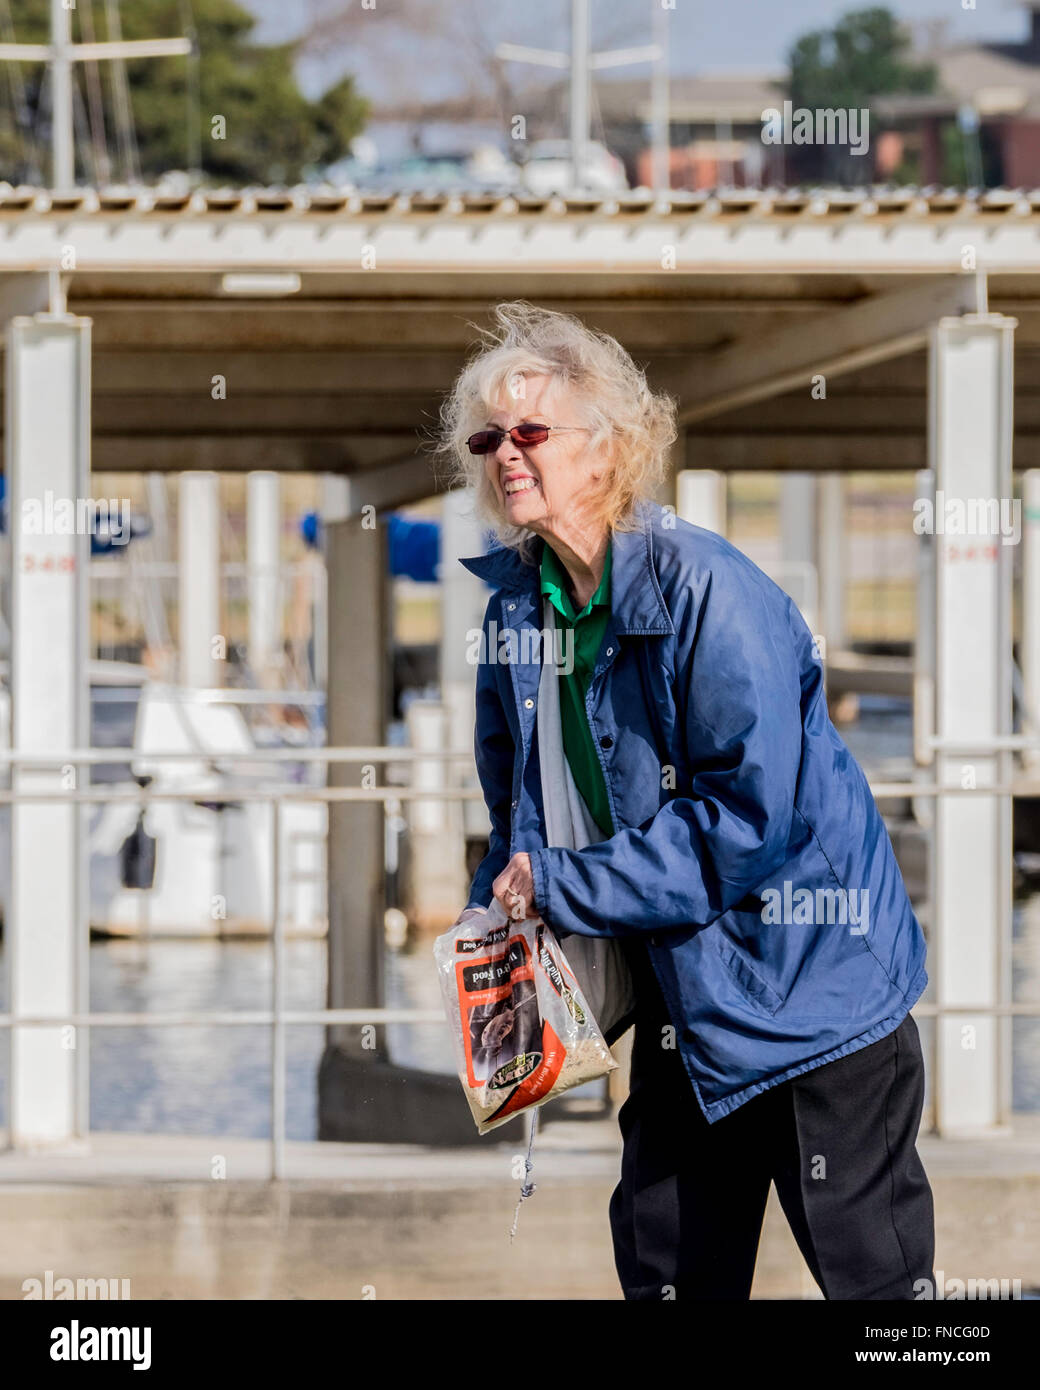 A senior woman throwing out bird seed for geese at a lake marina in Oklahoma, USA. - Stock Image